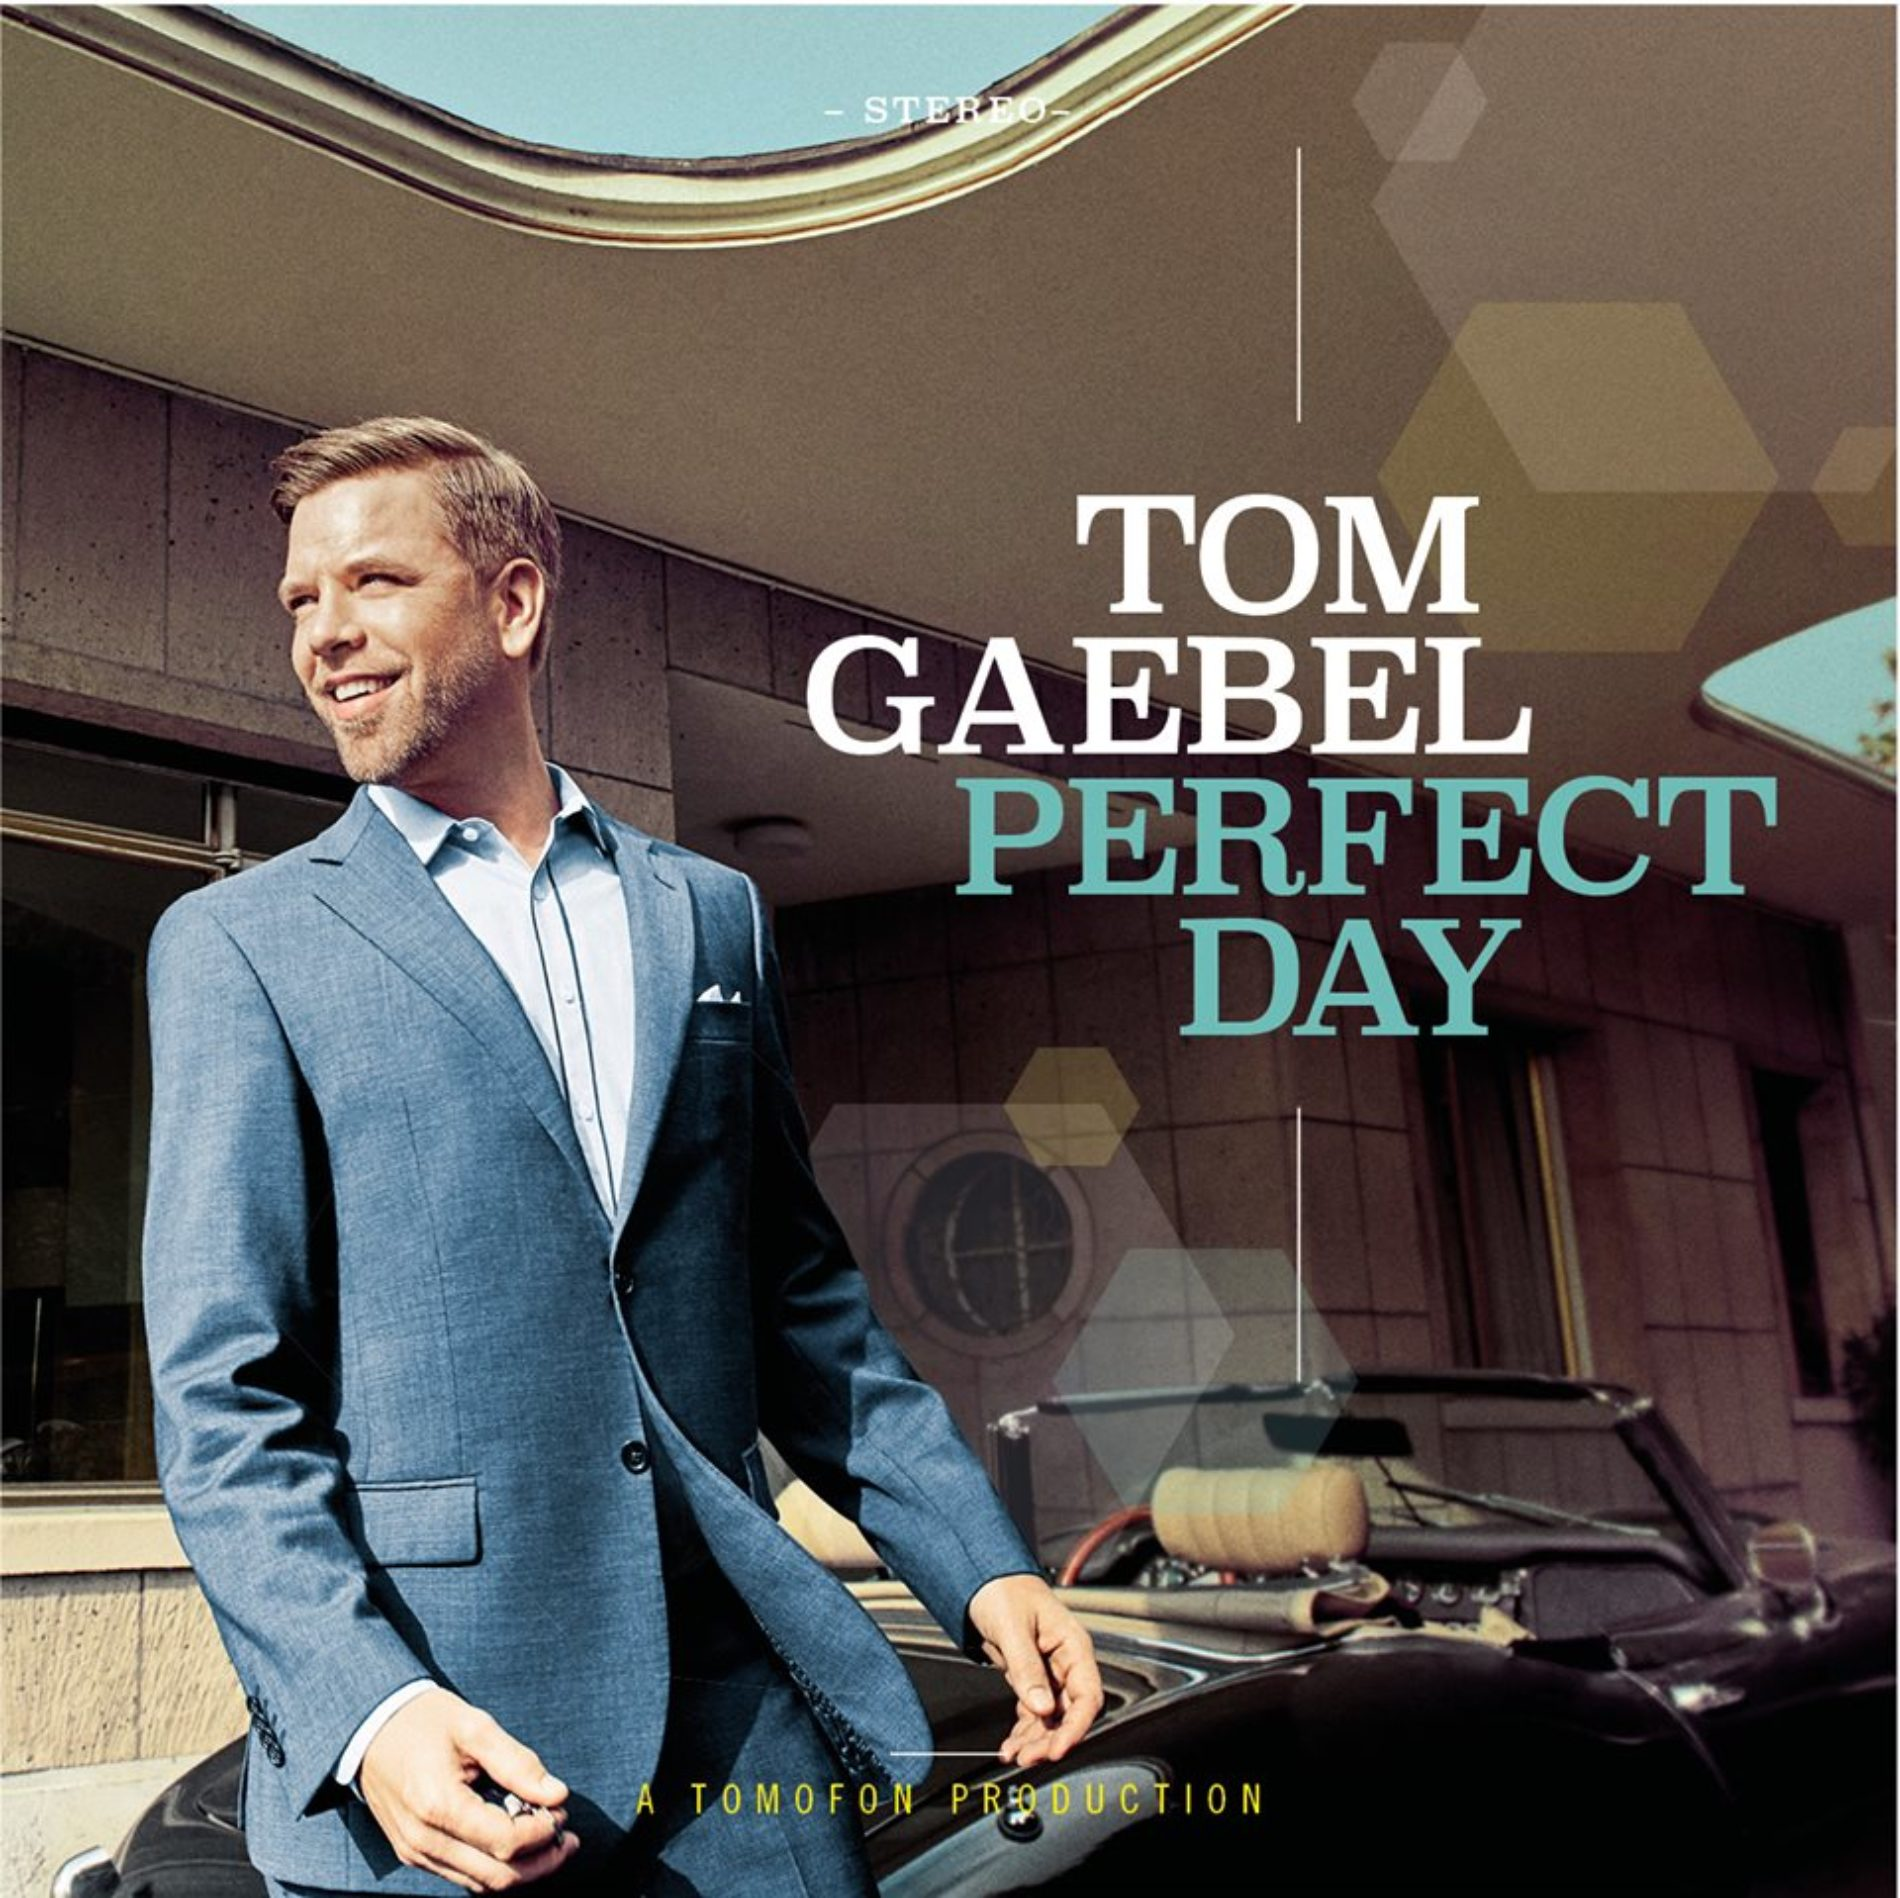 Tom Gaebel – neue Album im September